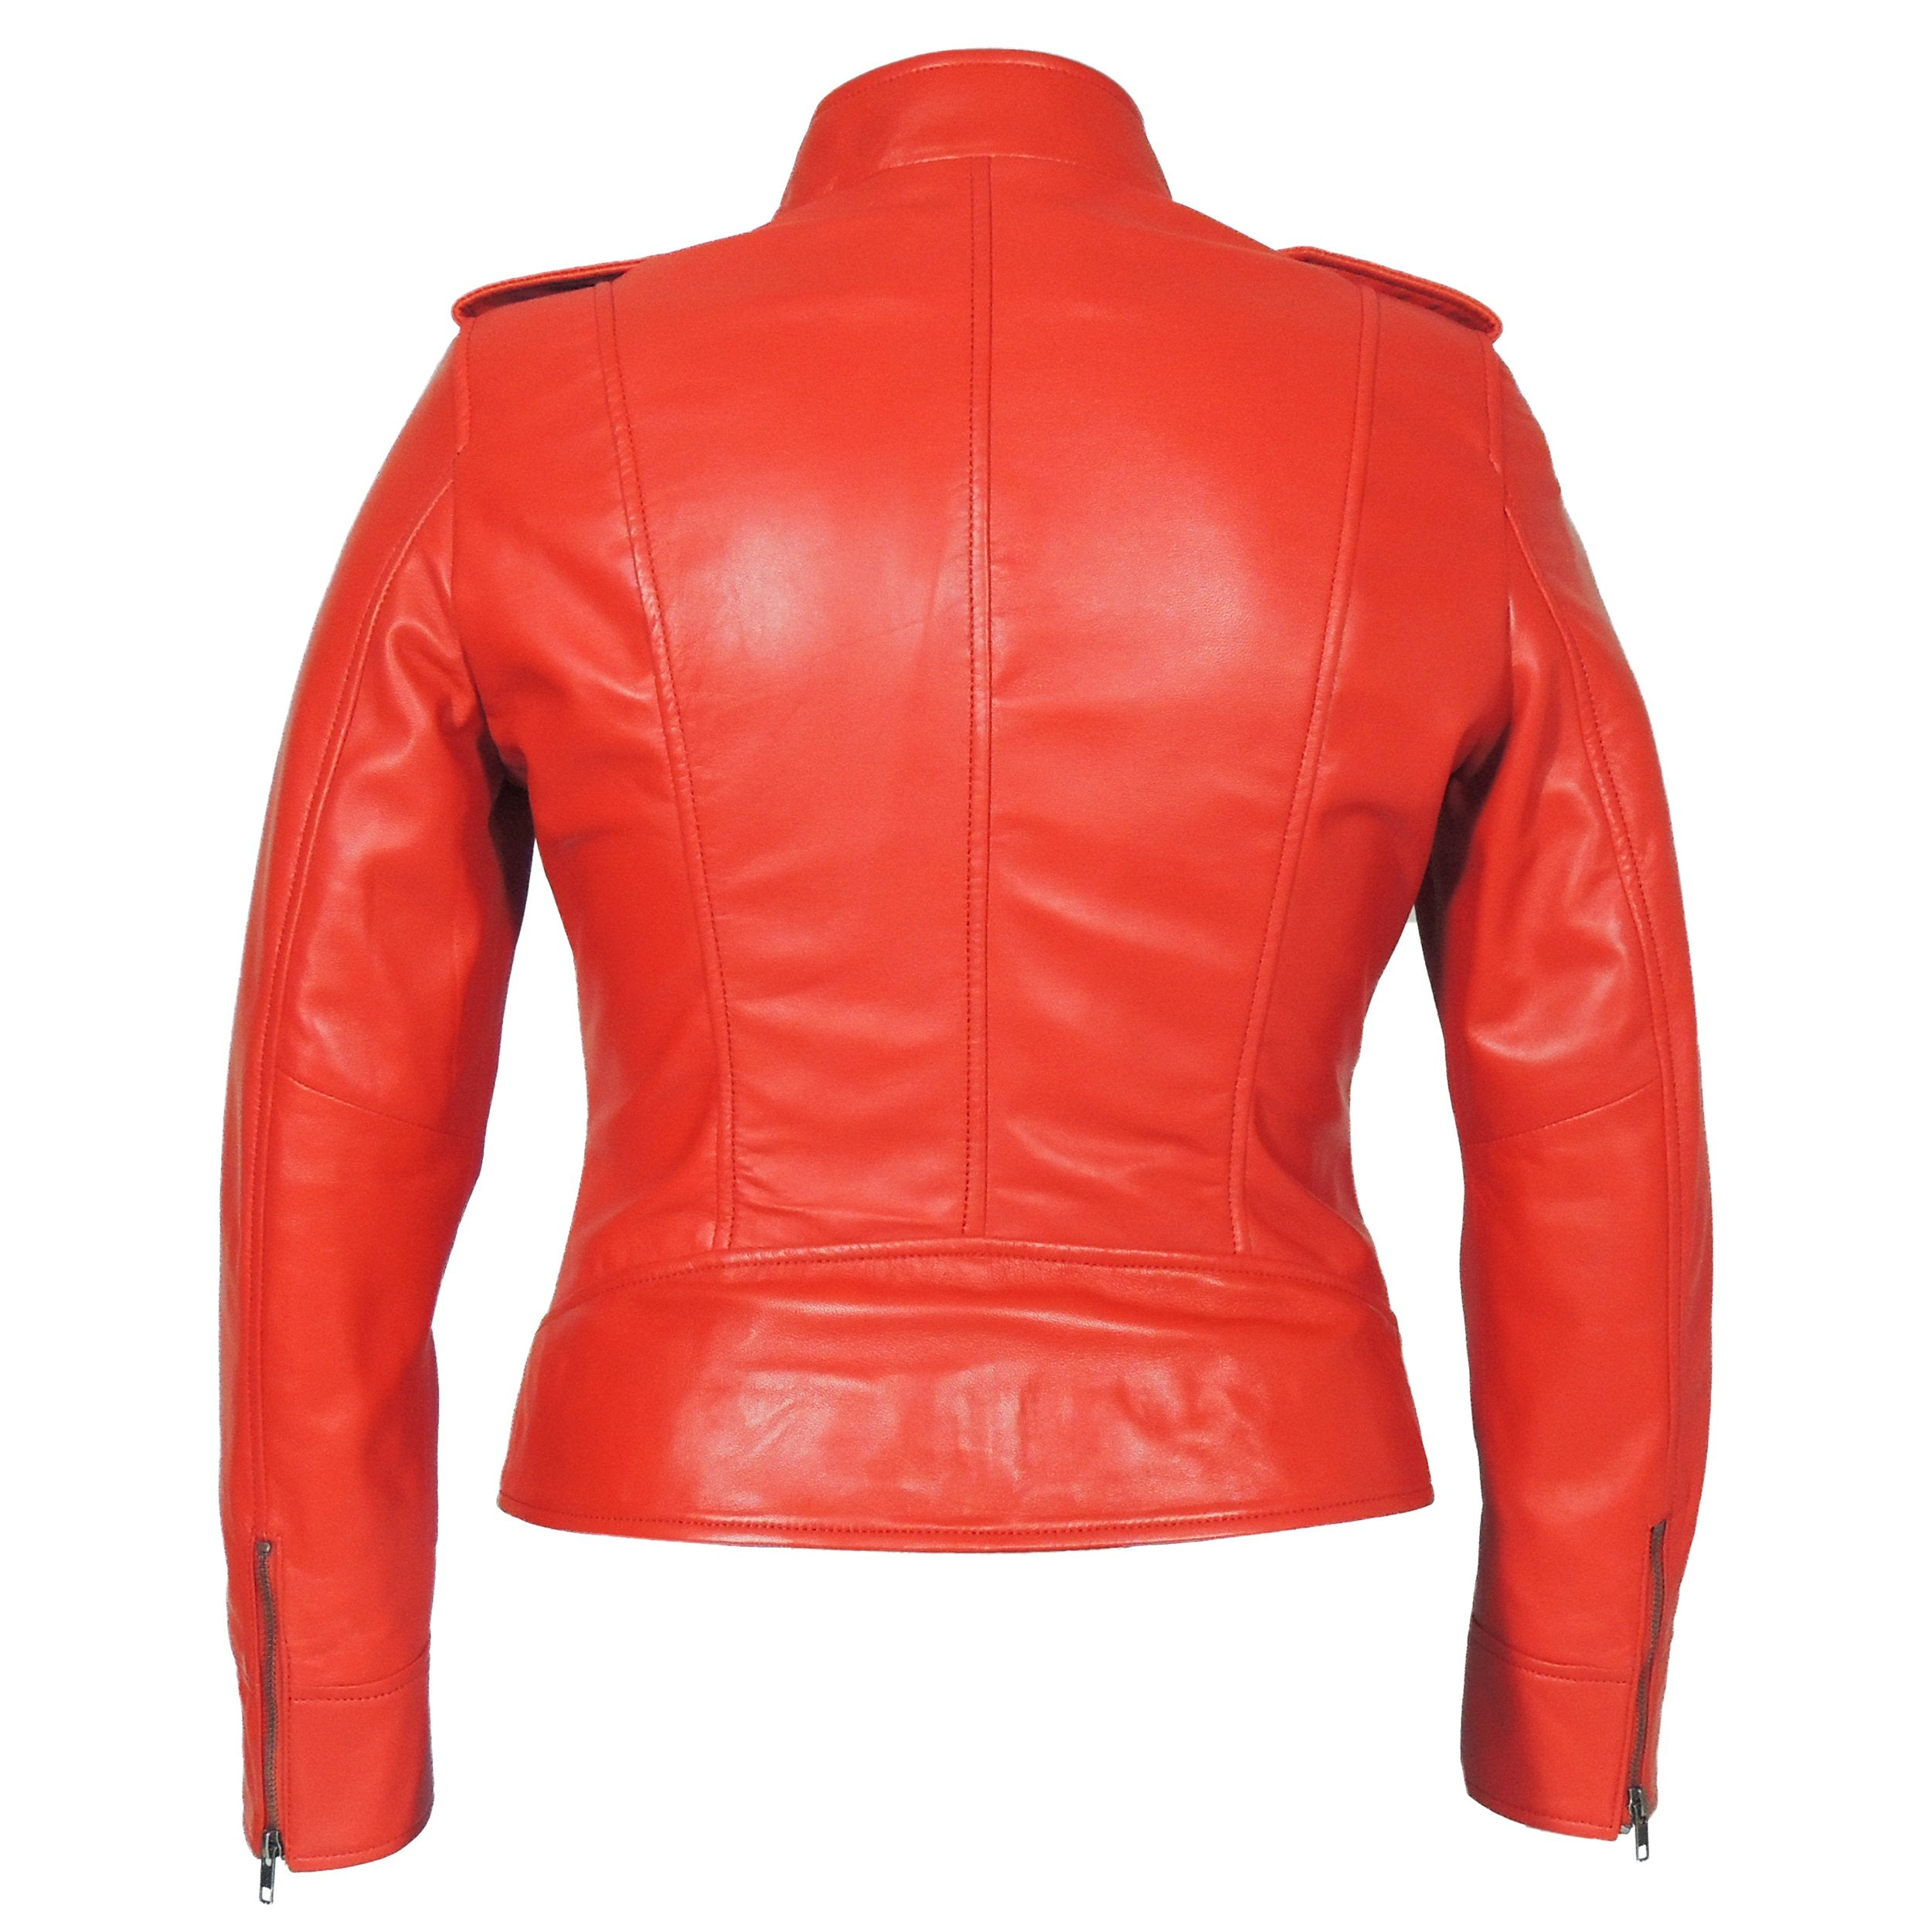 Faya Womens Leather Jacket Midnight - Discounted! - fadcloset